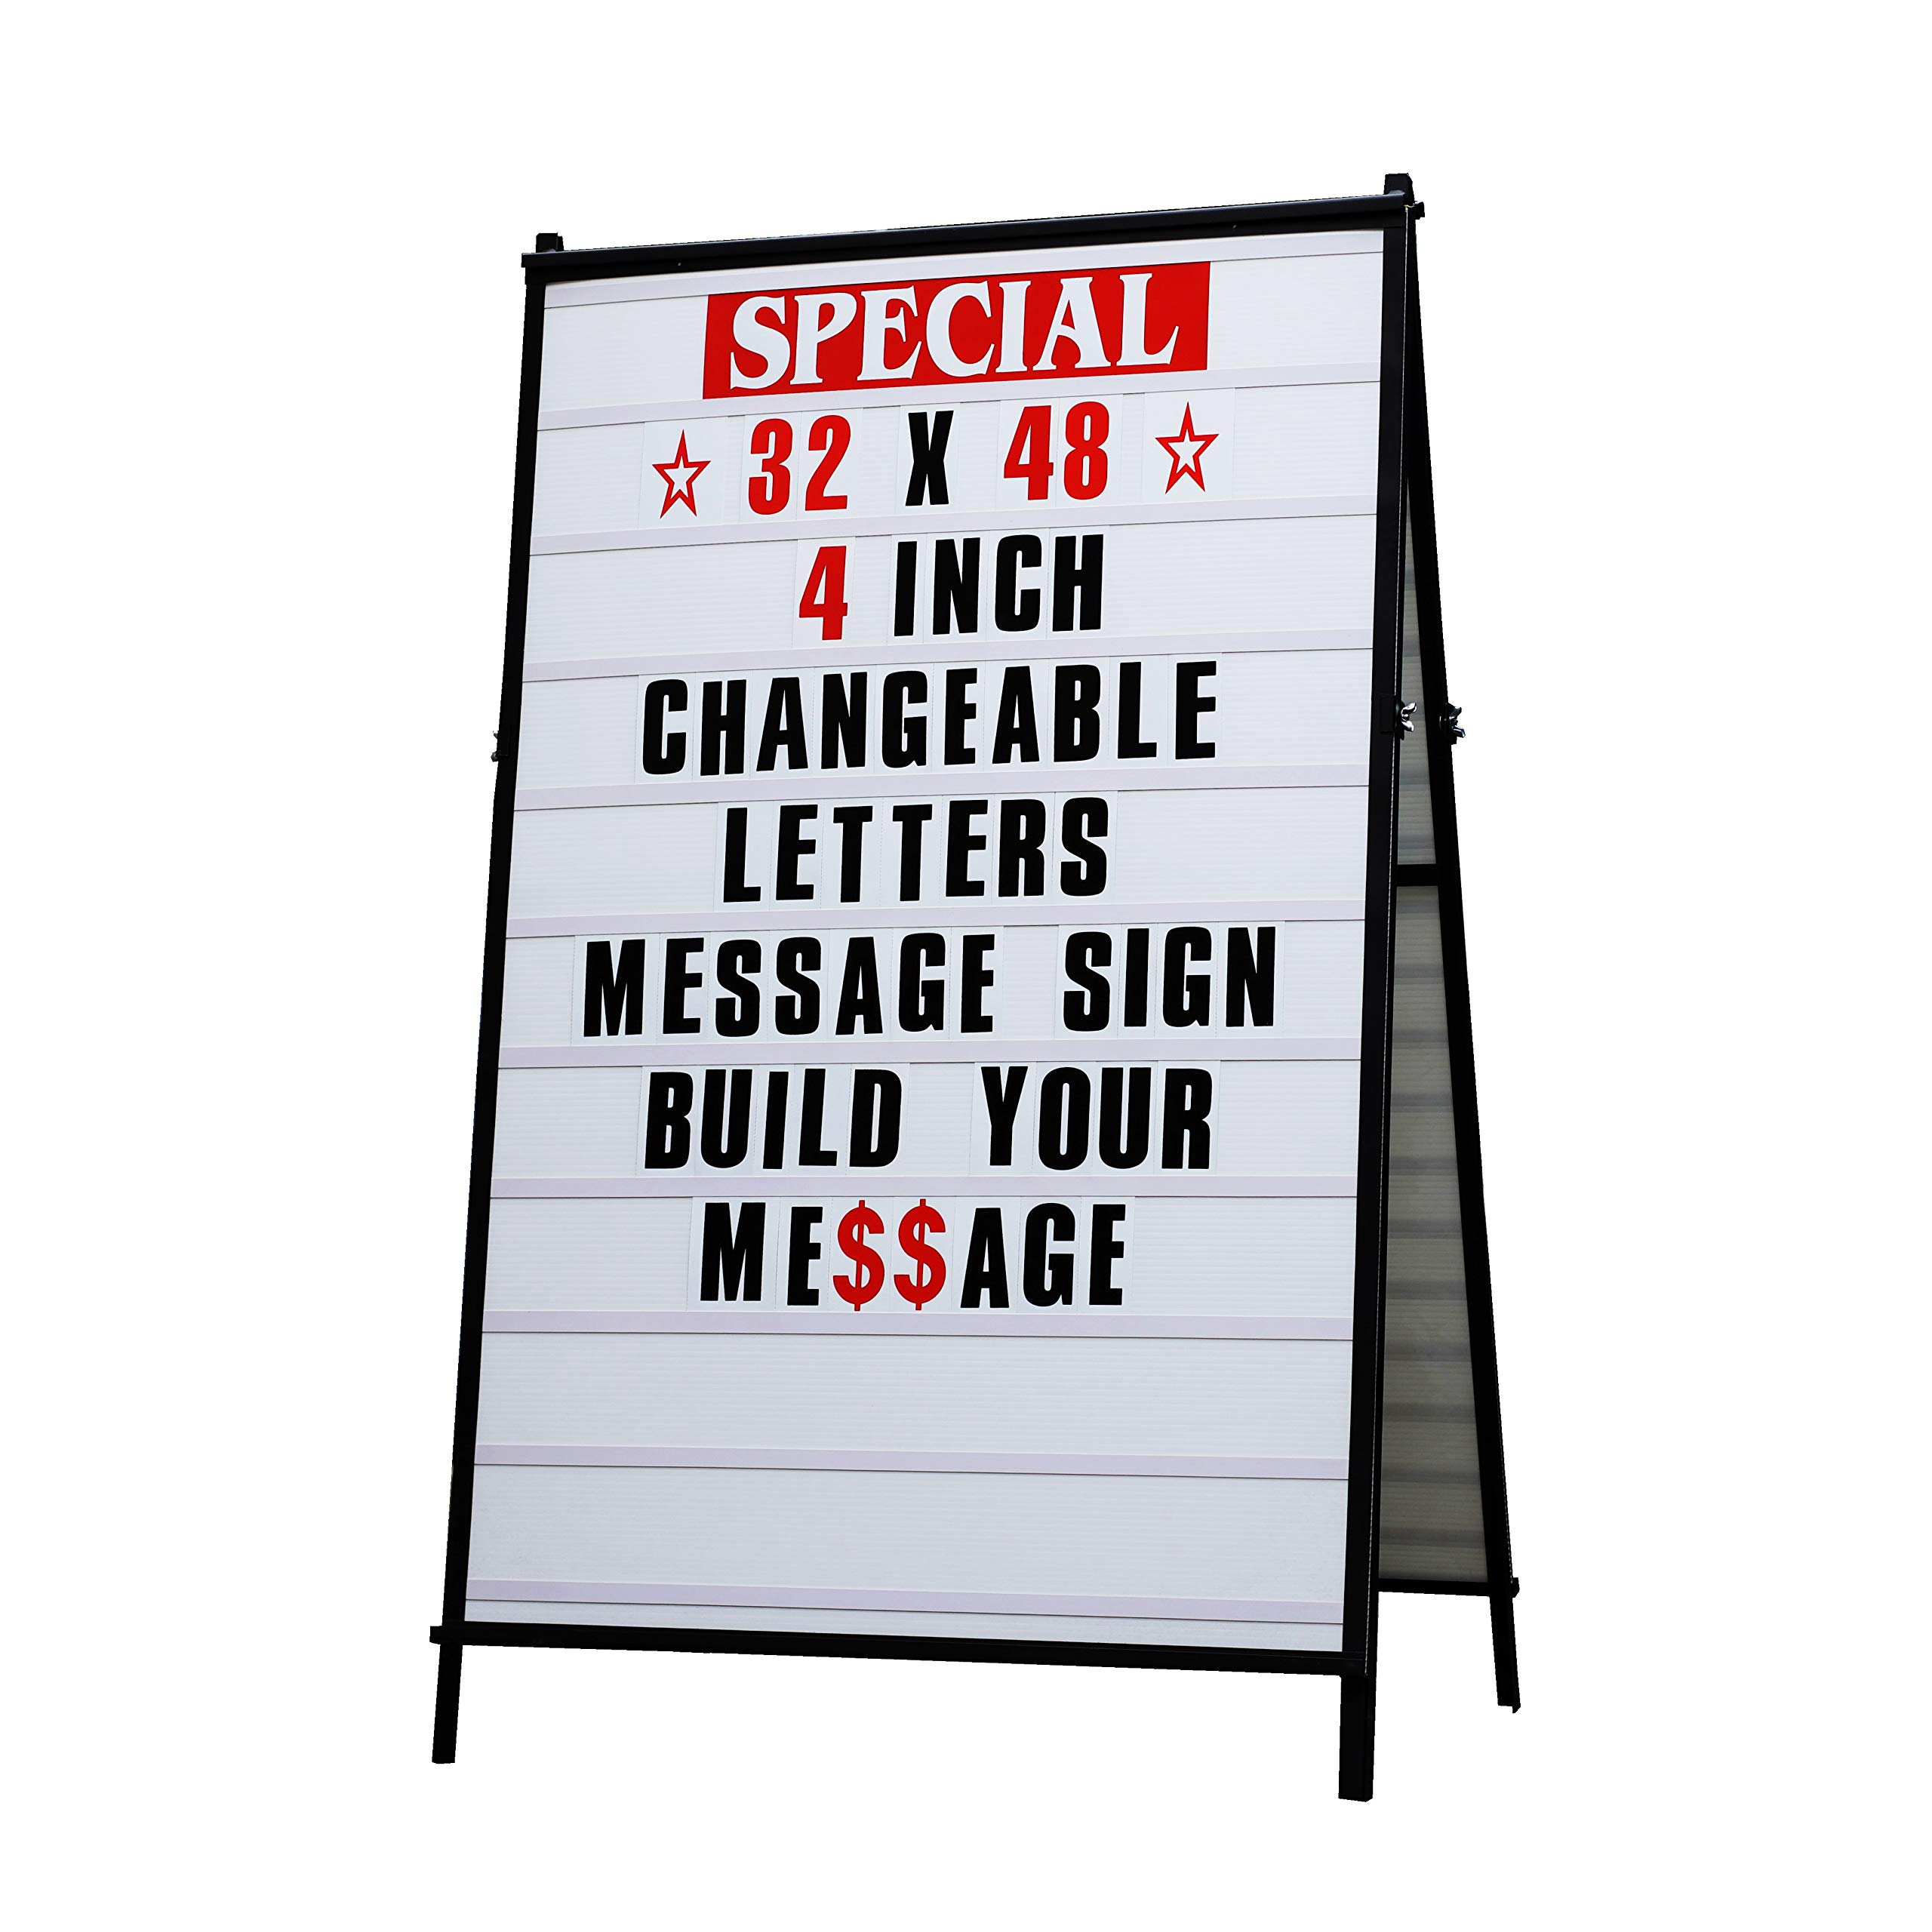 32''x 48'' Sidewalk A Frame Changeable Letters Message Sign with 4 inch Letters Set